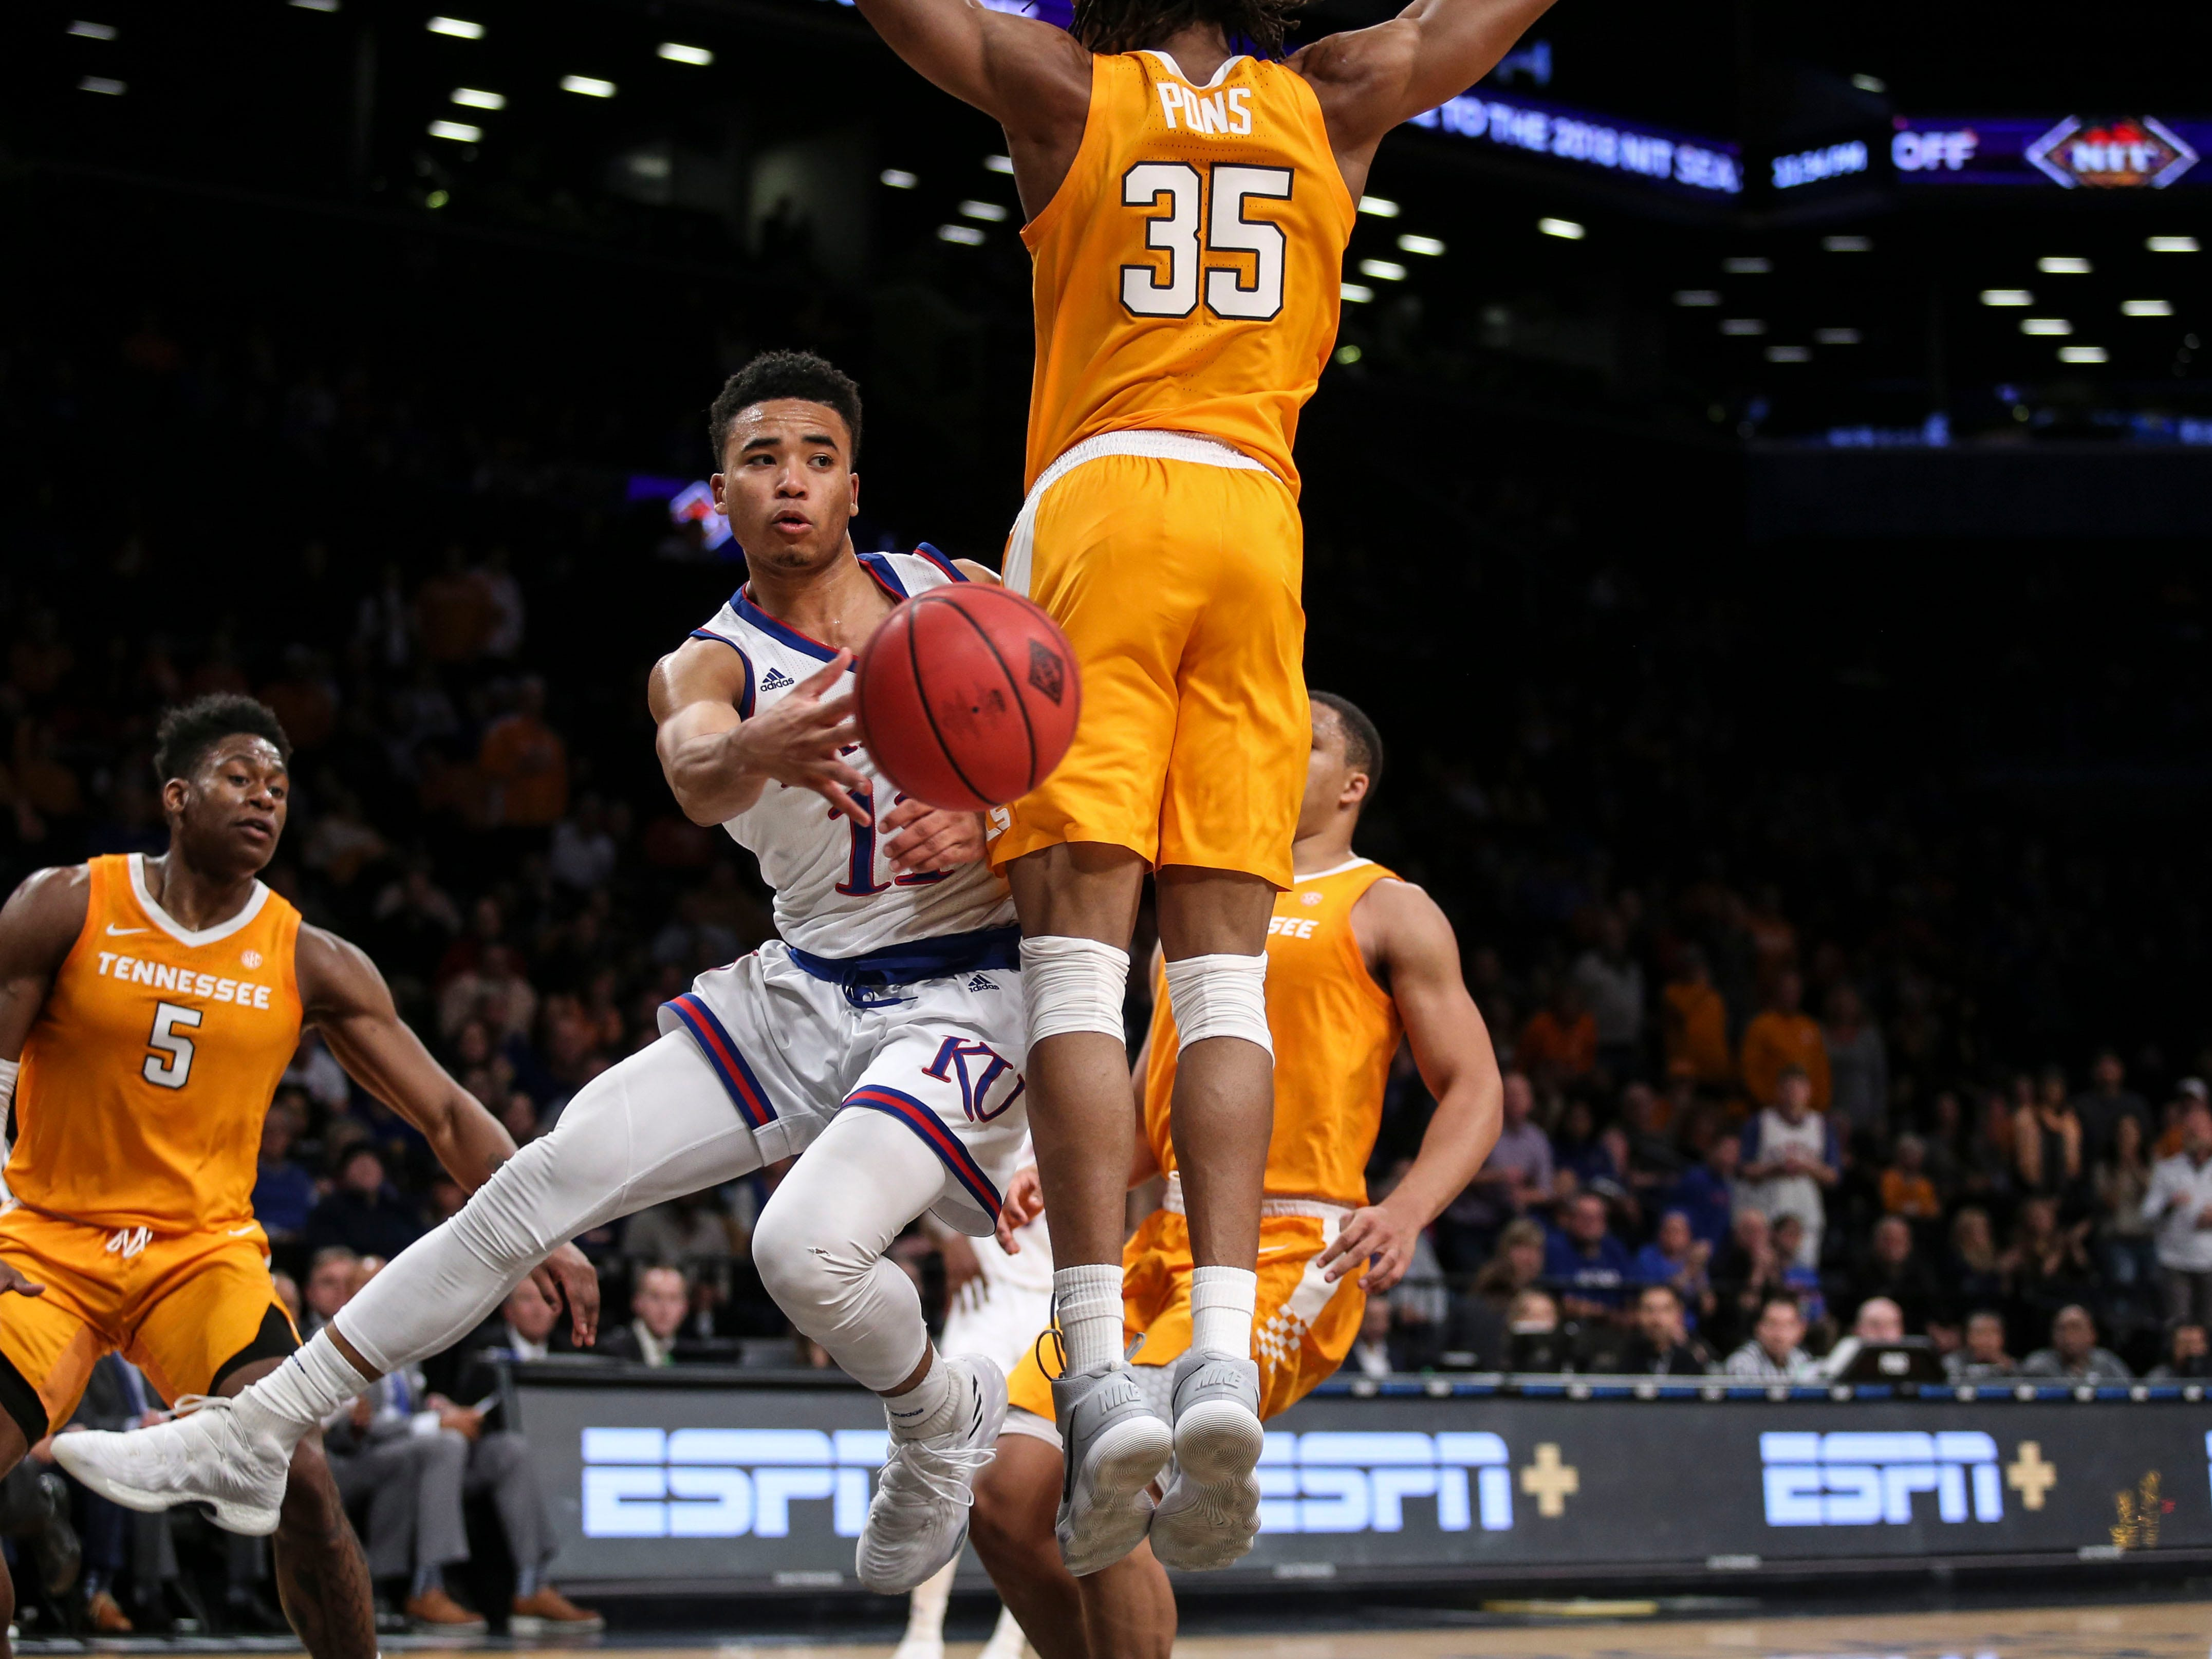 Nov 23, 2018; Brooklyn, NY, USA; Kansas Jayhawks guard Devon Dotson (11) makes a pass against the Tennessee Volunteers in the second half of the NIT Season Tipoff Championship at Barclays Center. Mandatory Credit: Wendell Cruz-USA TODAY Sports